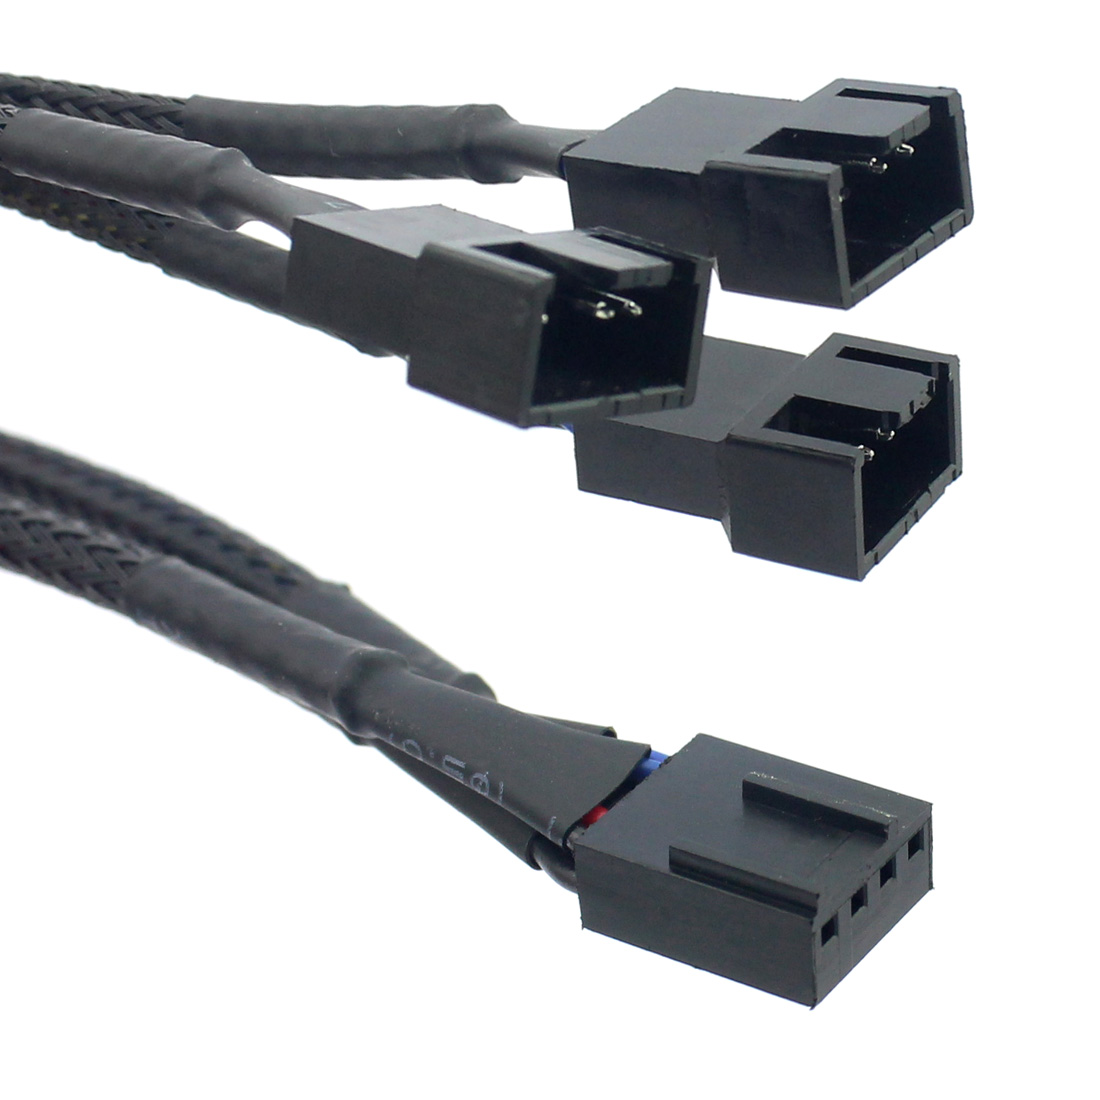 Cable Length: 30cm Connectors 4Pin PWM 1 to 3 Ways Cooling Fan Power Supply Extension Cable Y Splitter Cord Multiplier Computer PC Chassis Cooed 22AWG 30cm